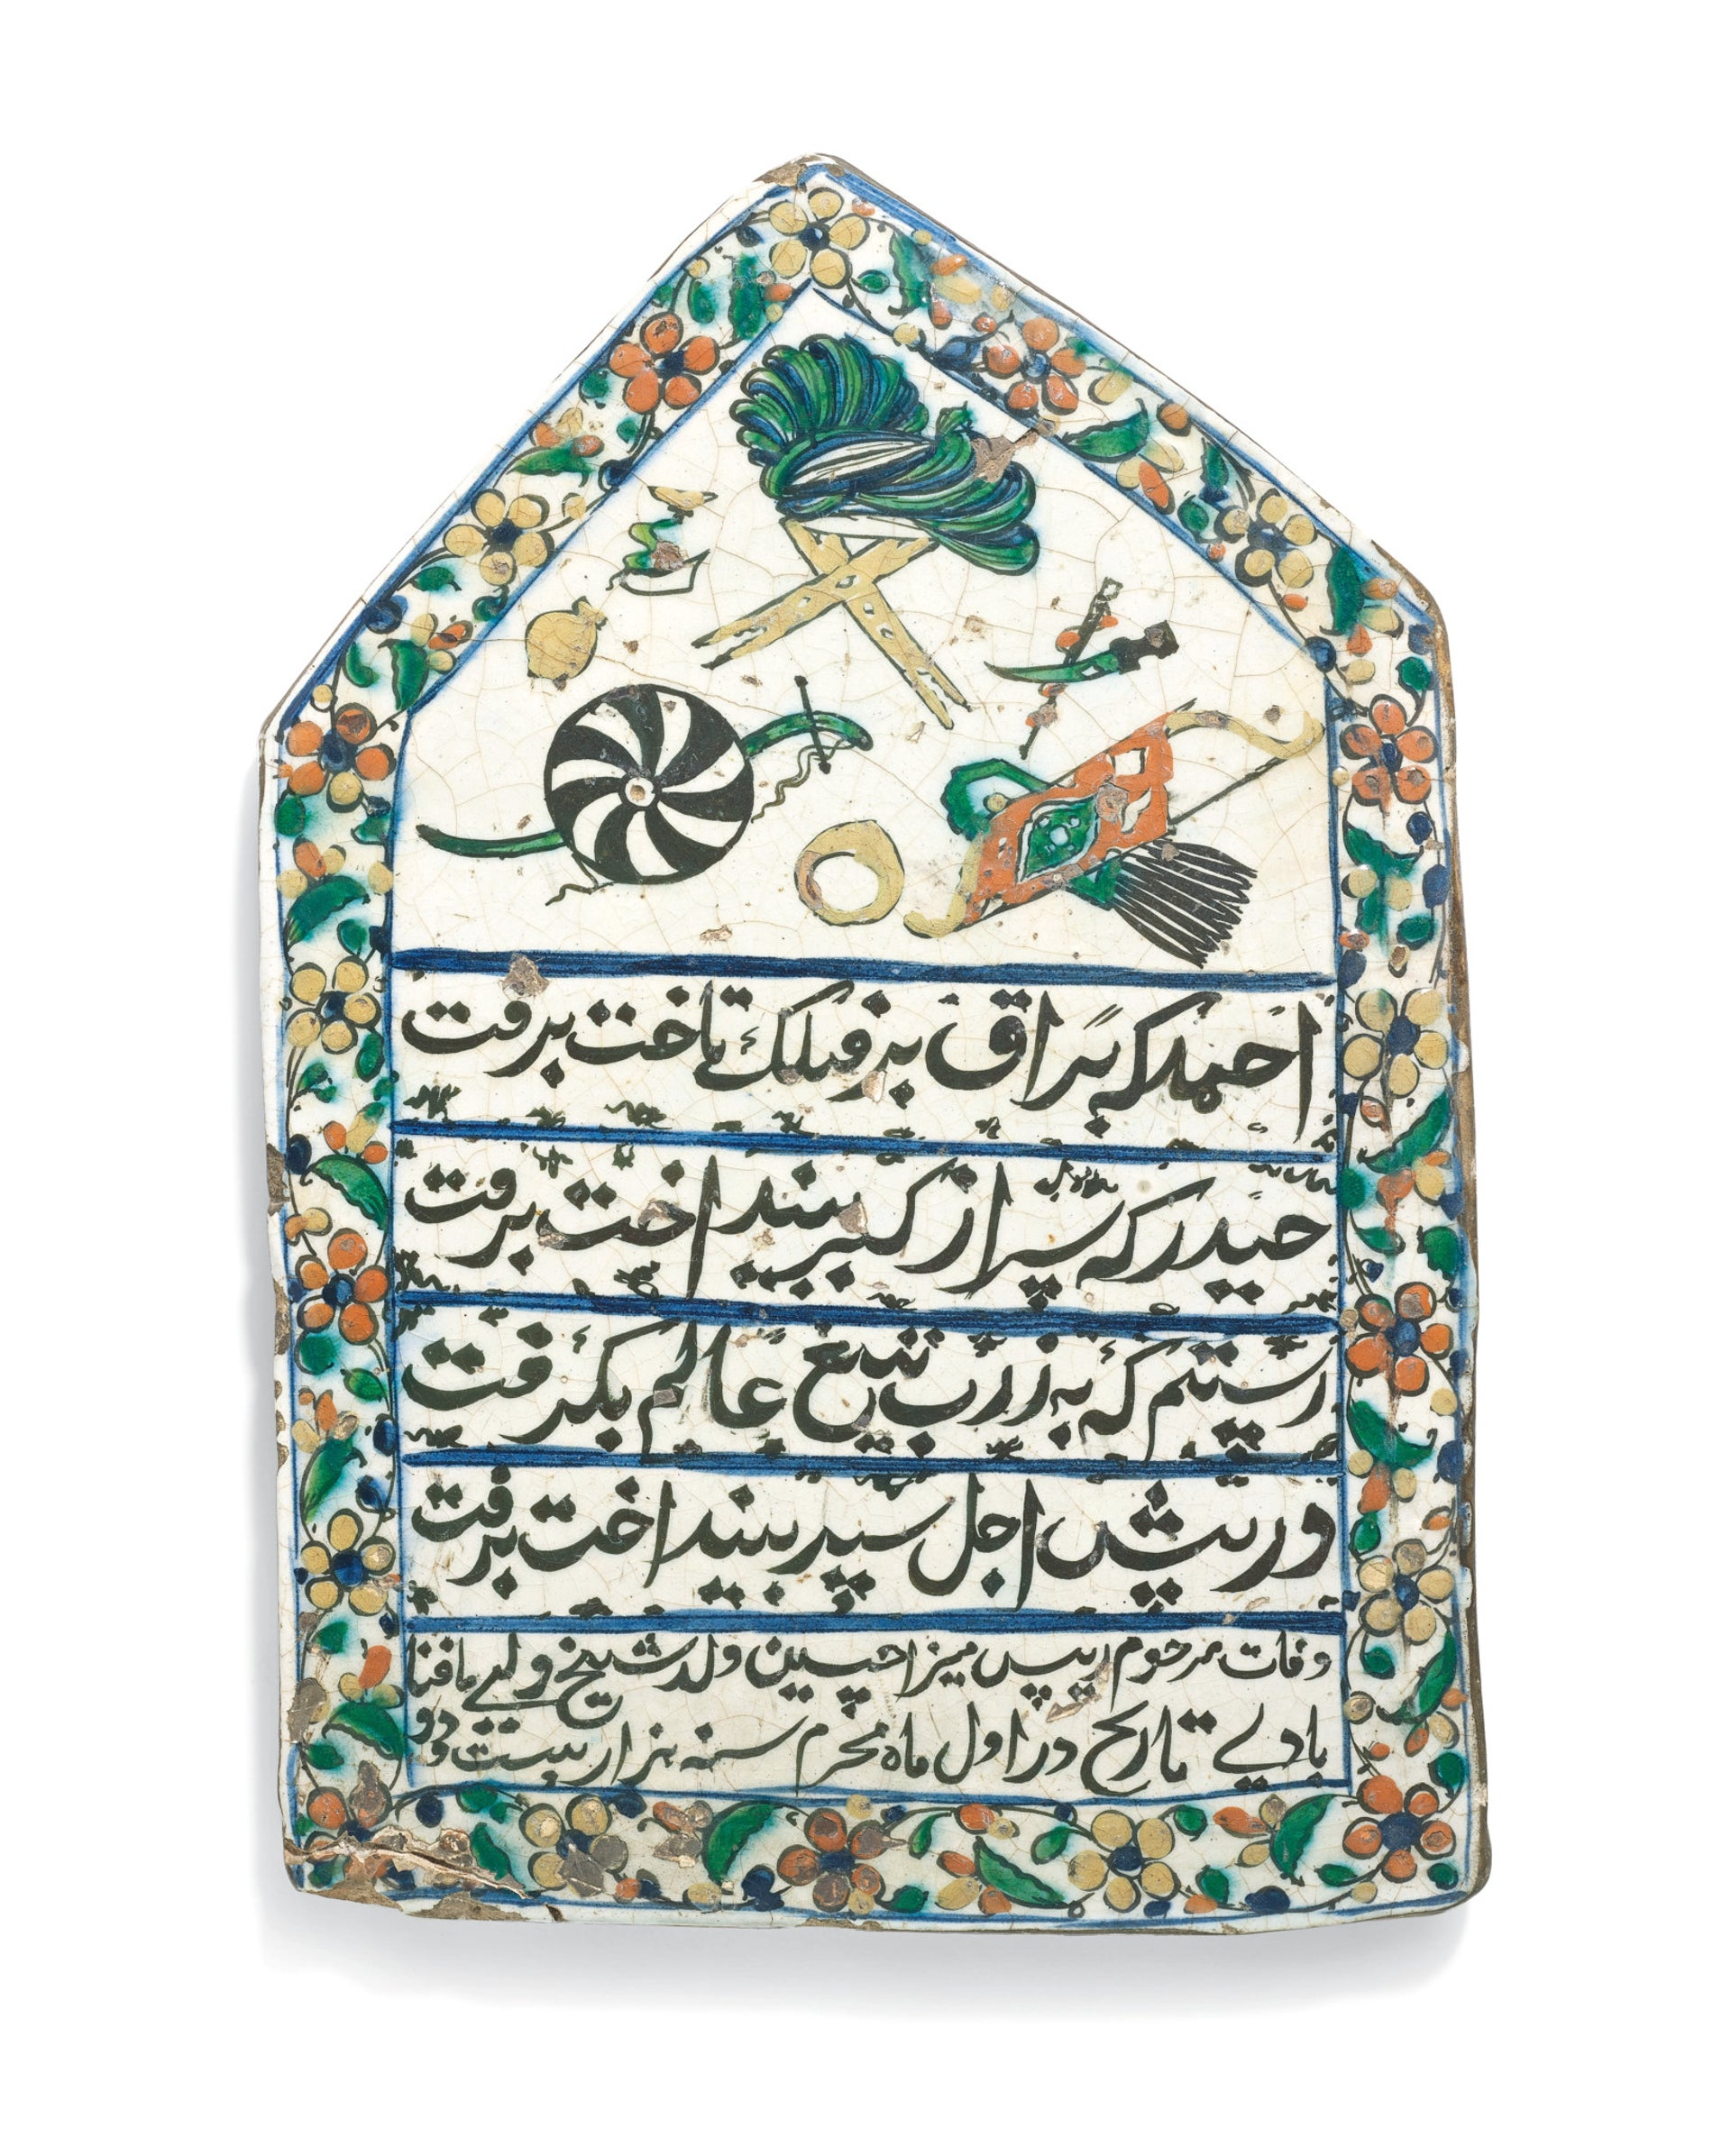 A Safavid polychrome pottery tombstone tile, Persia, dated 1022 AH / 1613 AD, estimated at 12,000 -18,000 GBP ($15,000 - $23,000).